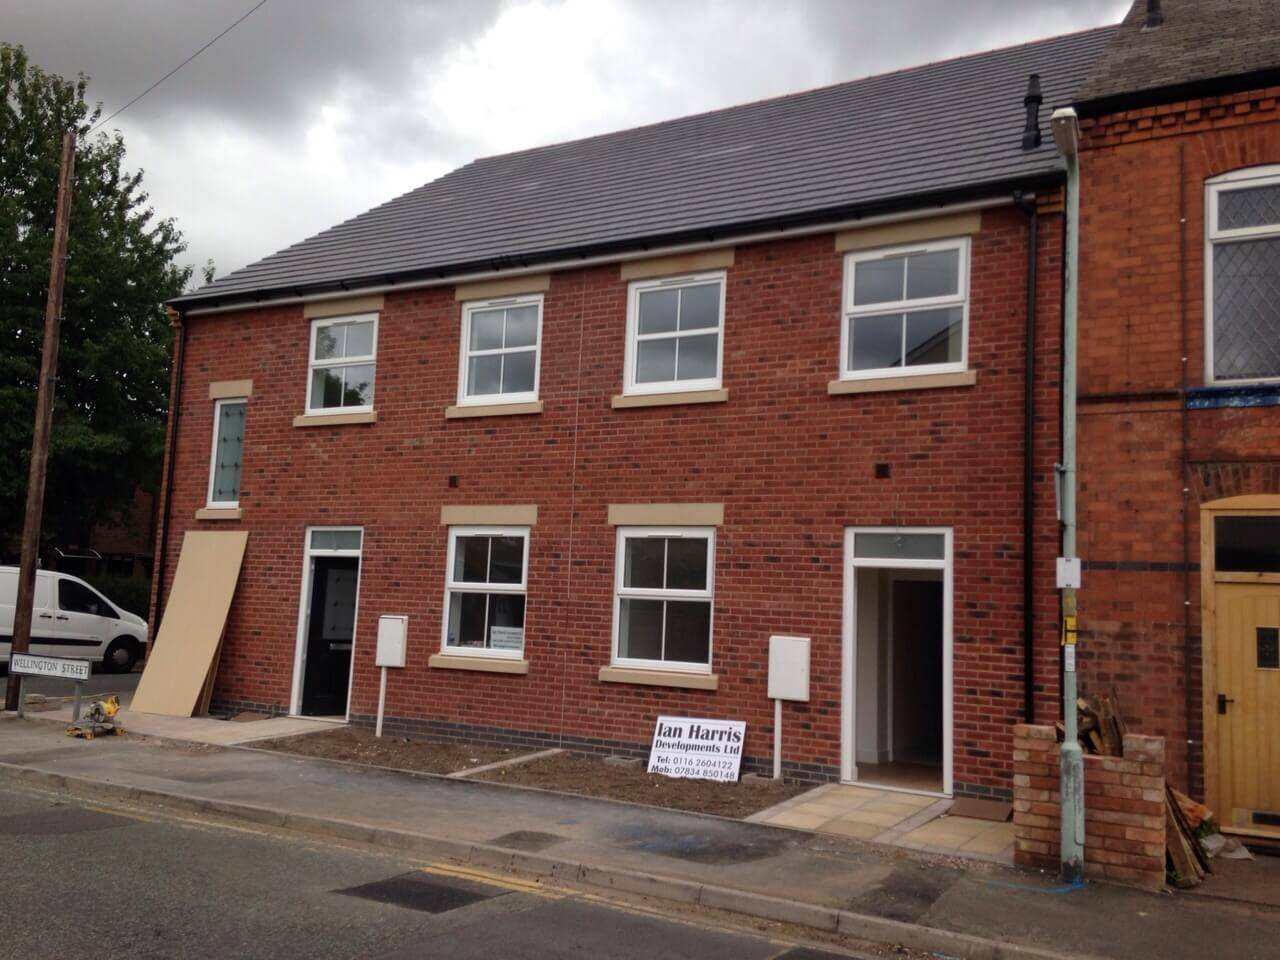 ATT on 4 new builds in Syston